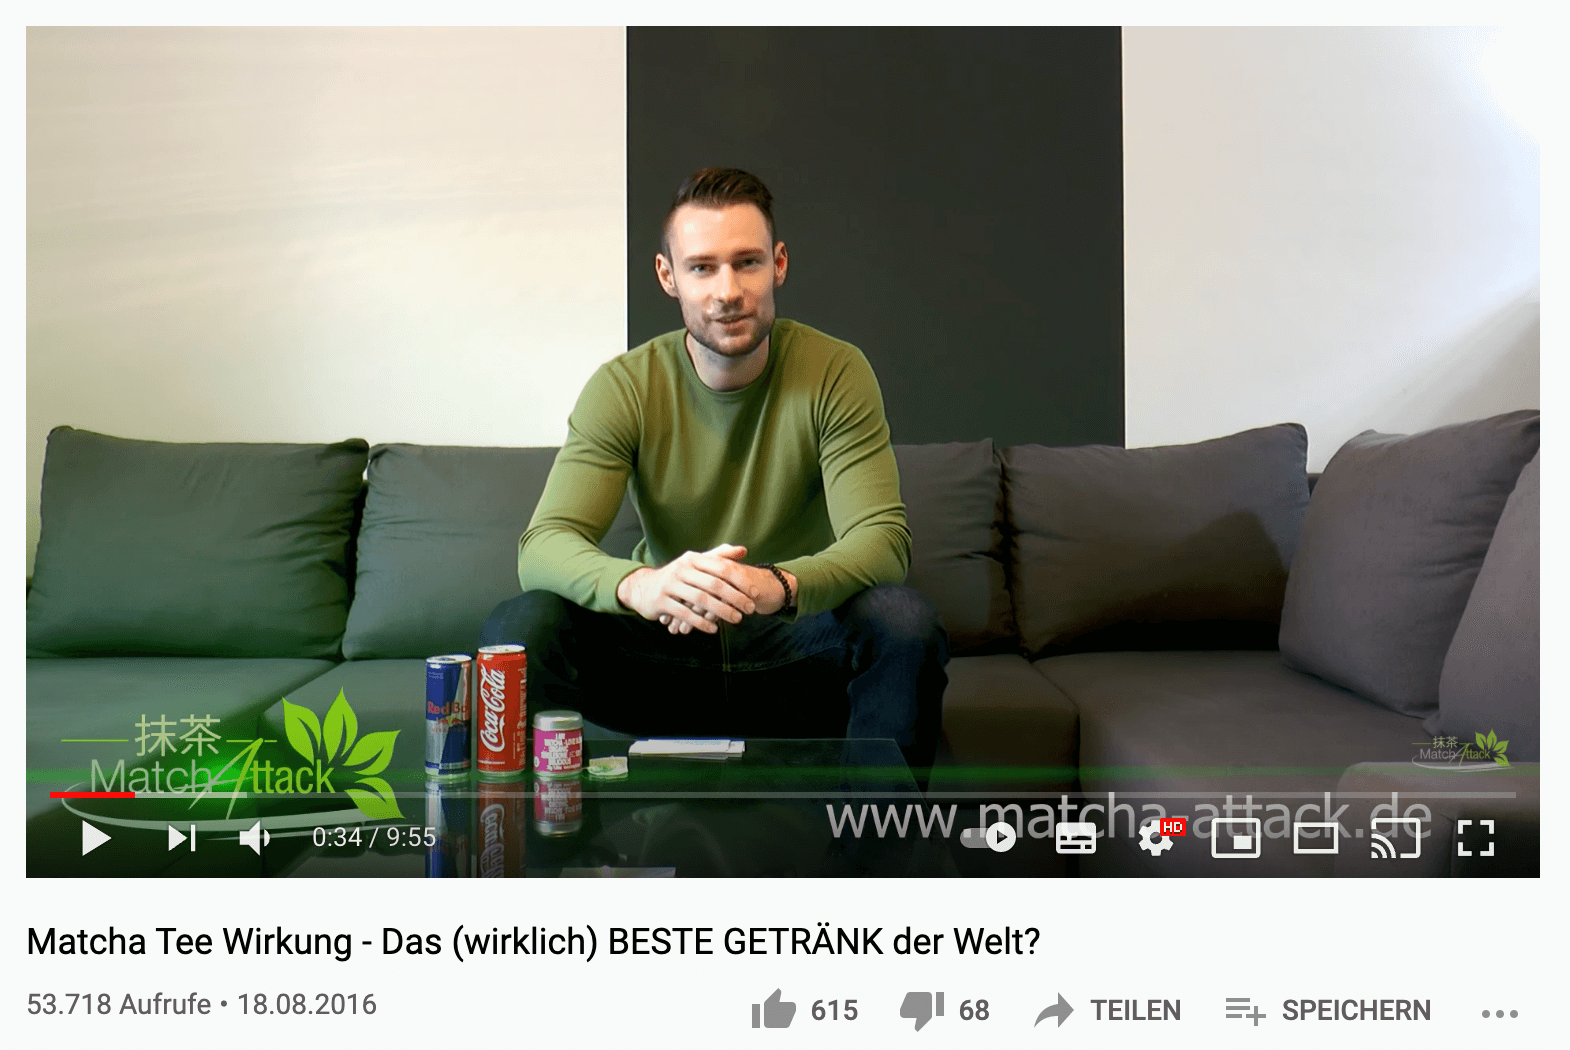 Tim Kock's first YouTube video for his matcha tea Shopify store